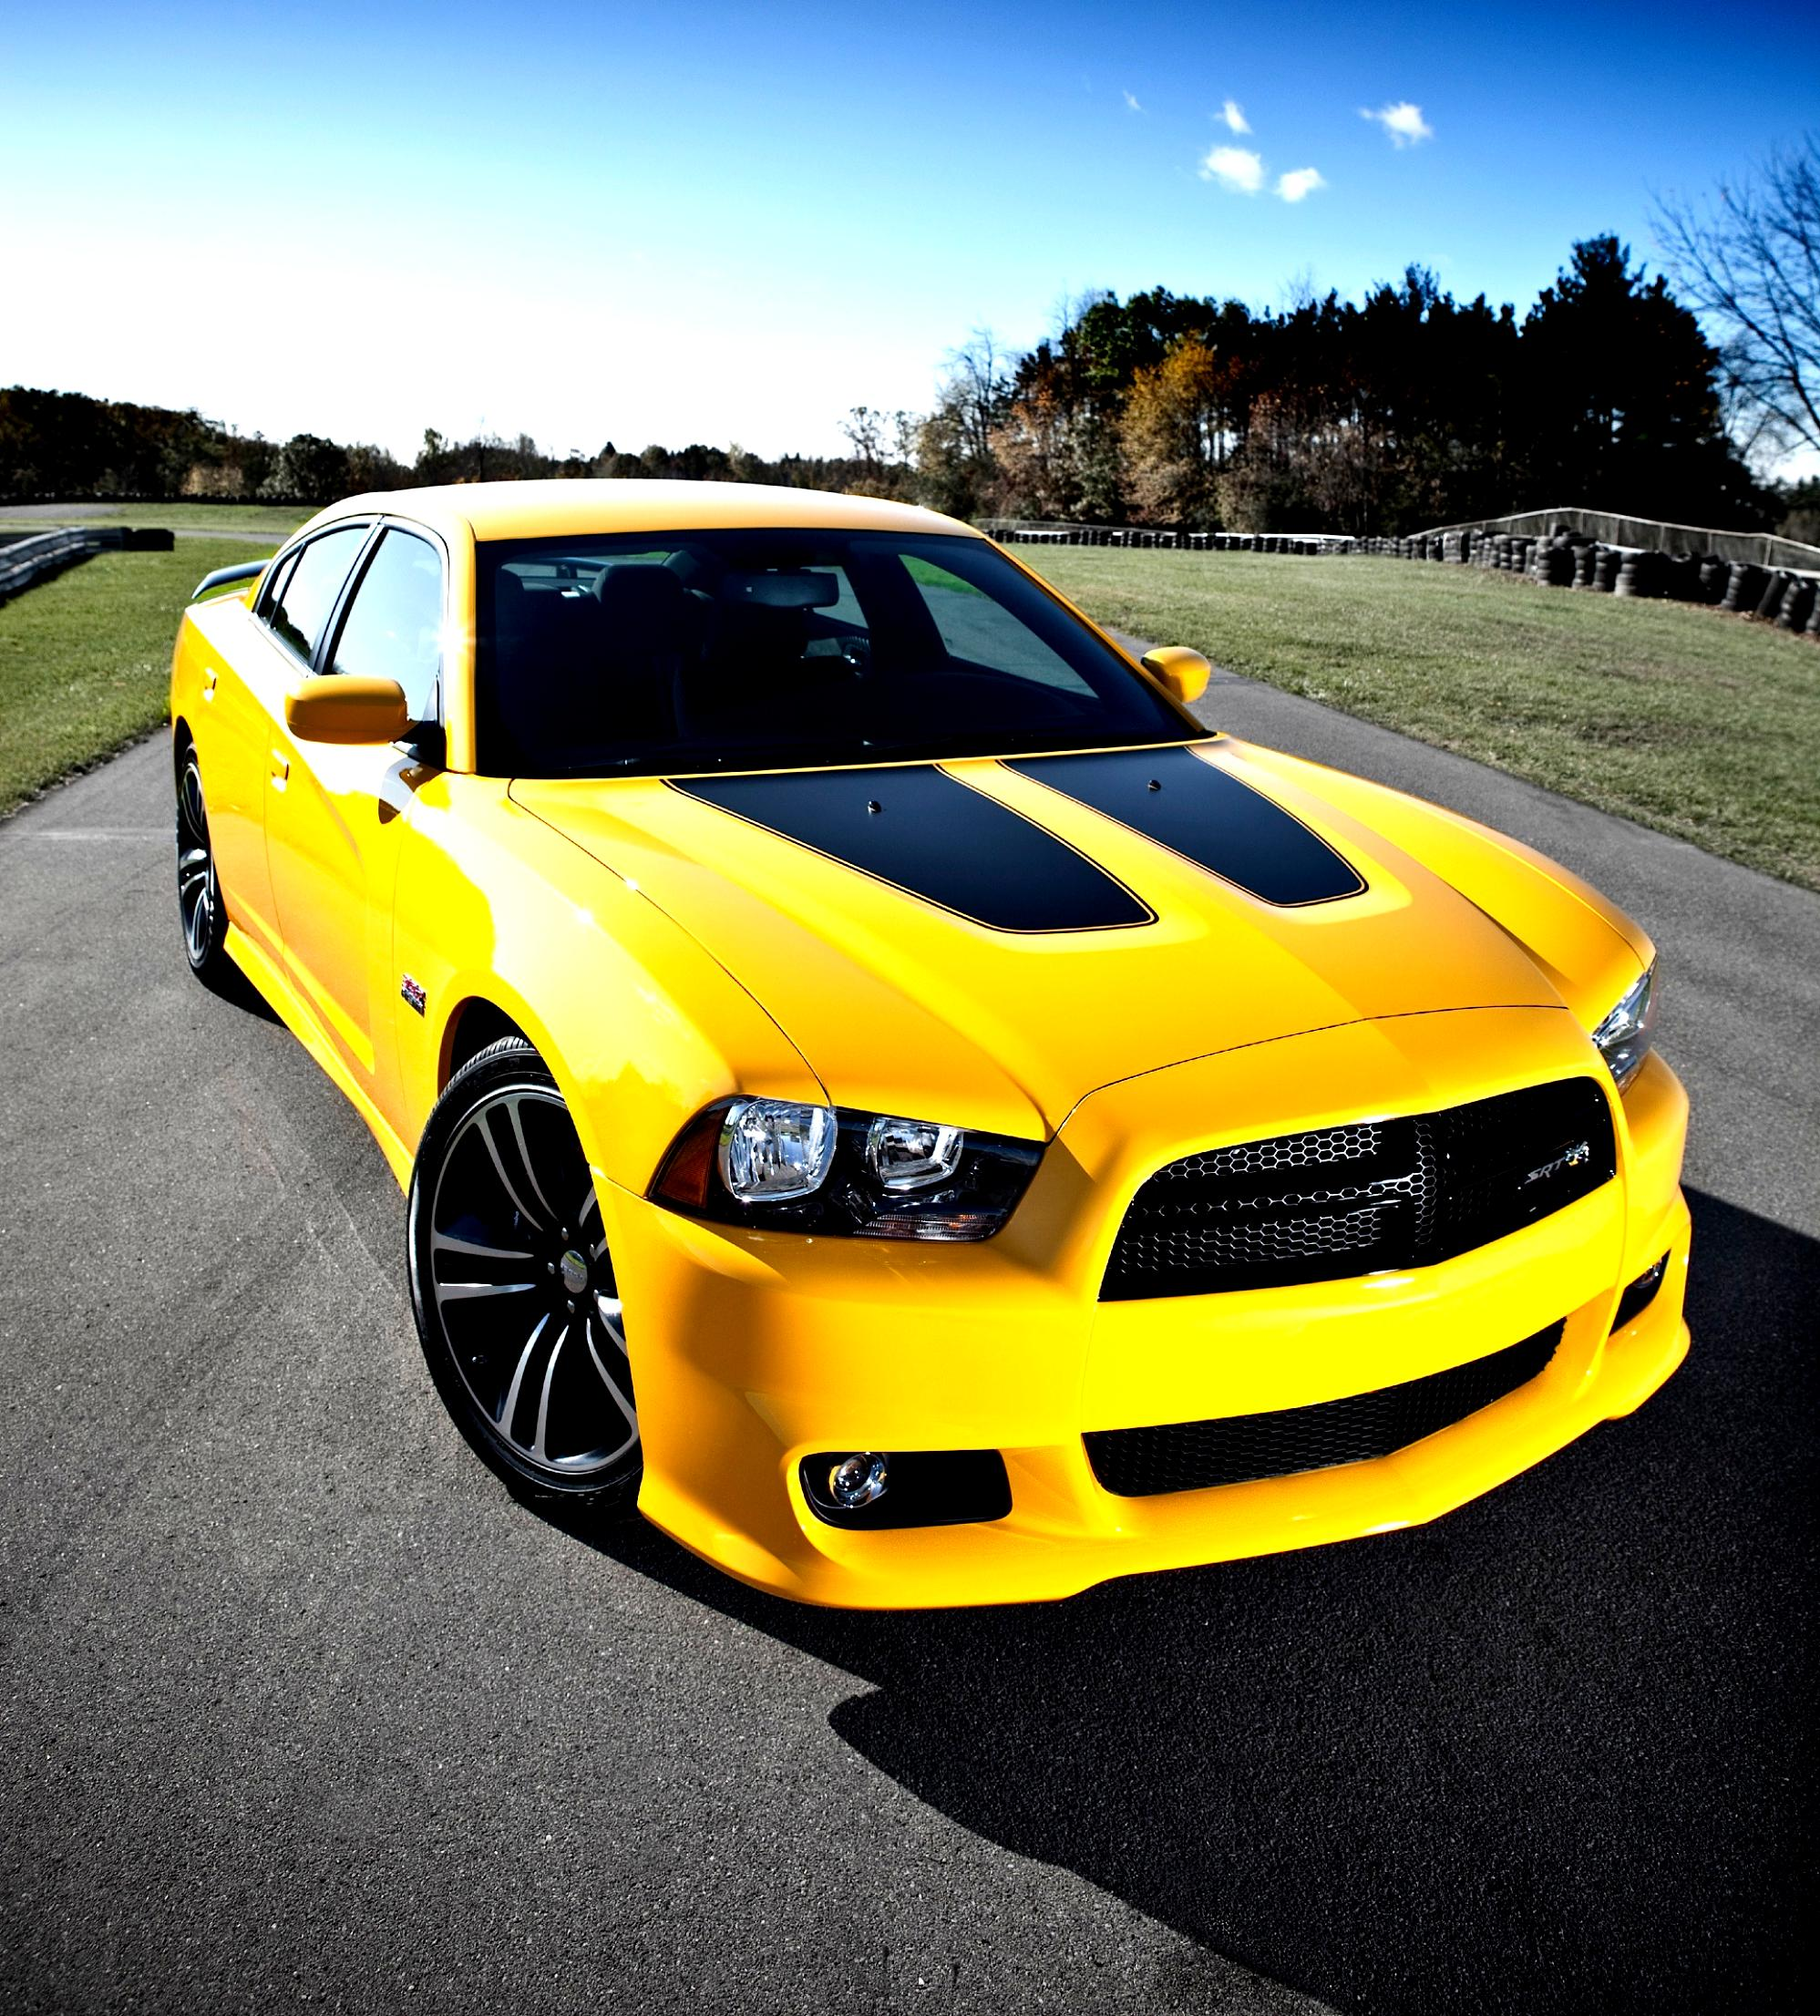 Dodge Charger SRT8 2012 on MotoImg.com